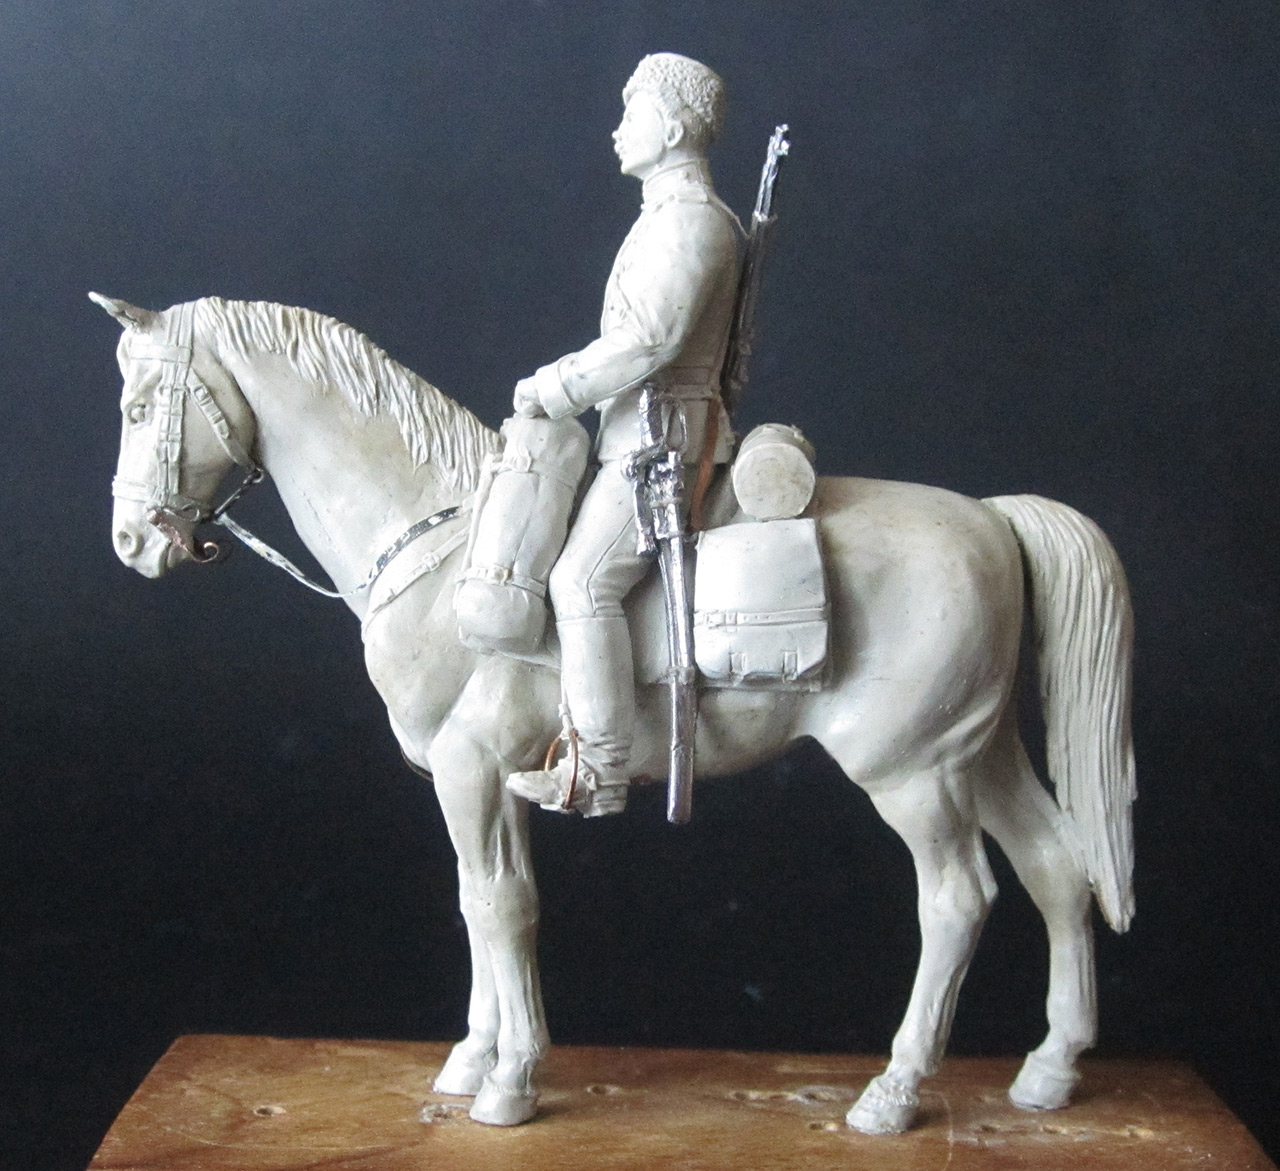 Sculpture: Dragoons private, 1897-1907, photo #1